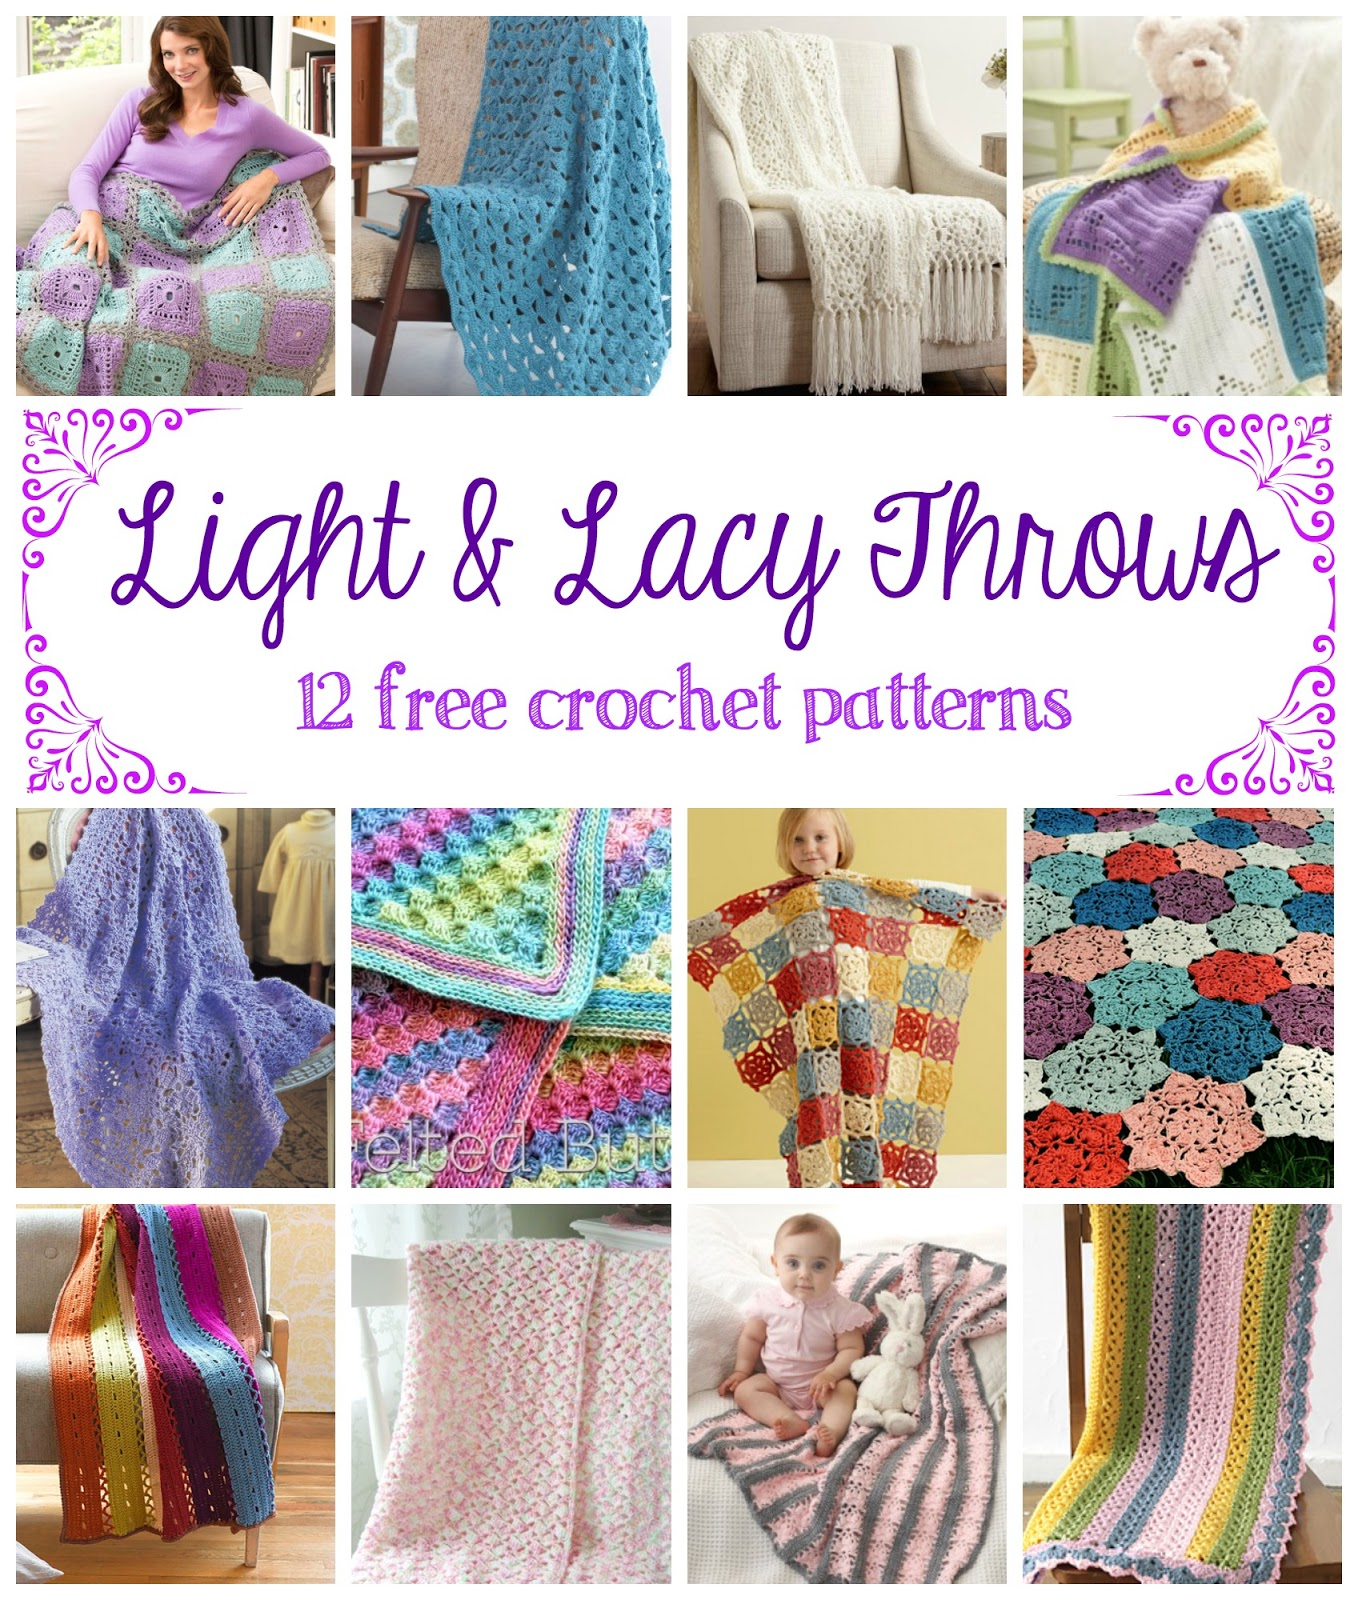 Fiber flux light and lacy throws 12 free crochet patterns 12 free crochet patterns bankloansurffo Gallery